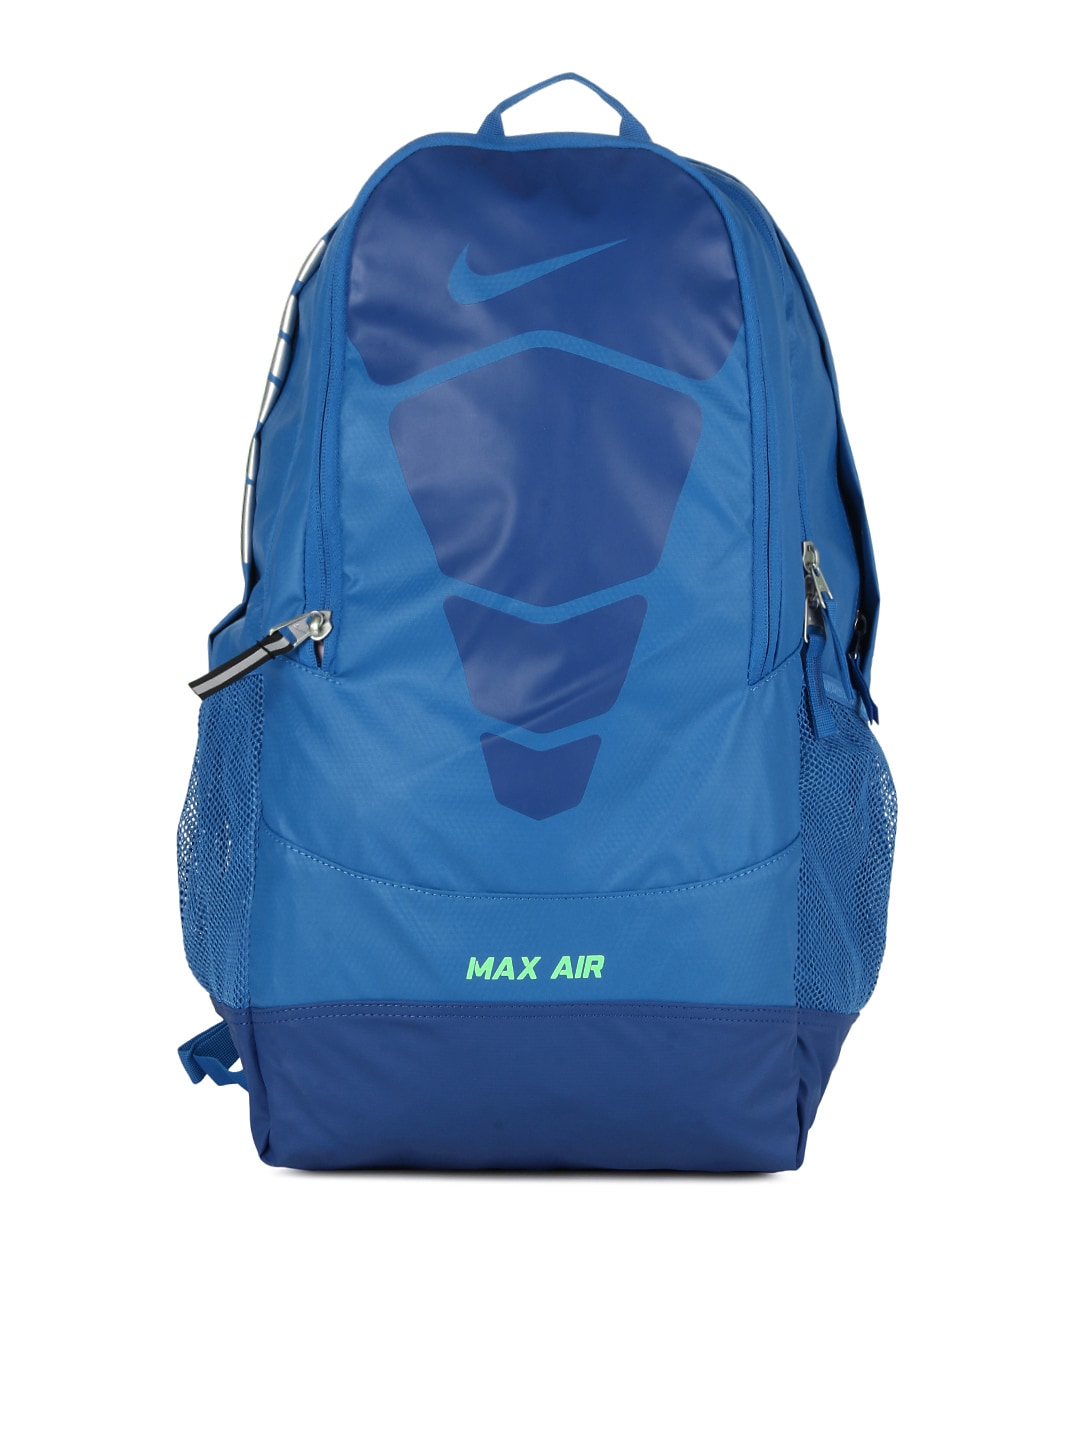 4841037902e Nike ba4729-441 Unisex Blue Training Max Air Vapor Superfly Backpack- Price  in India